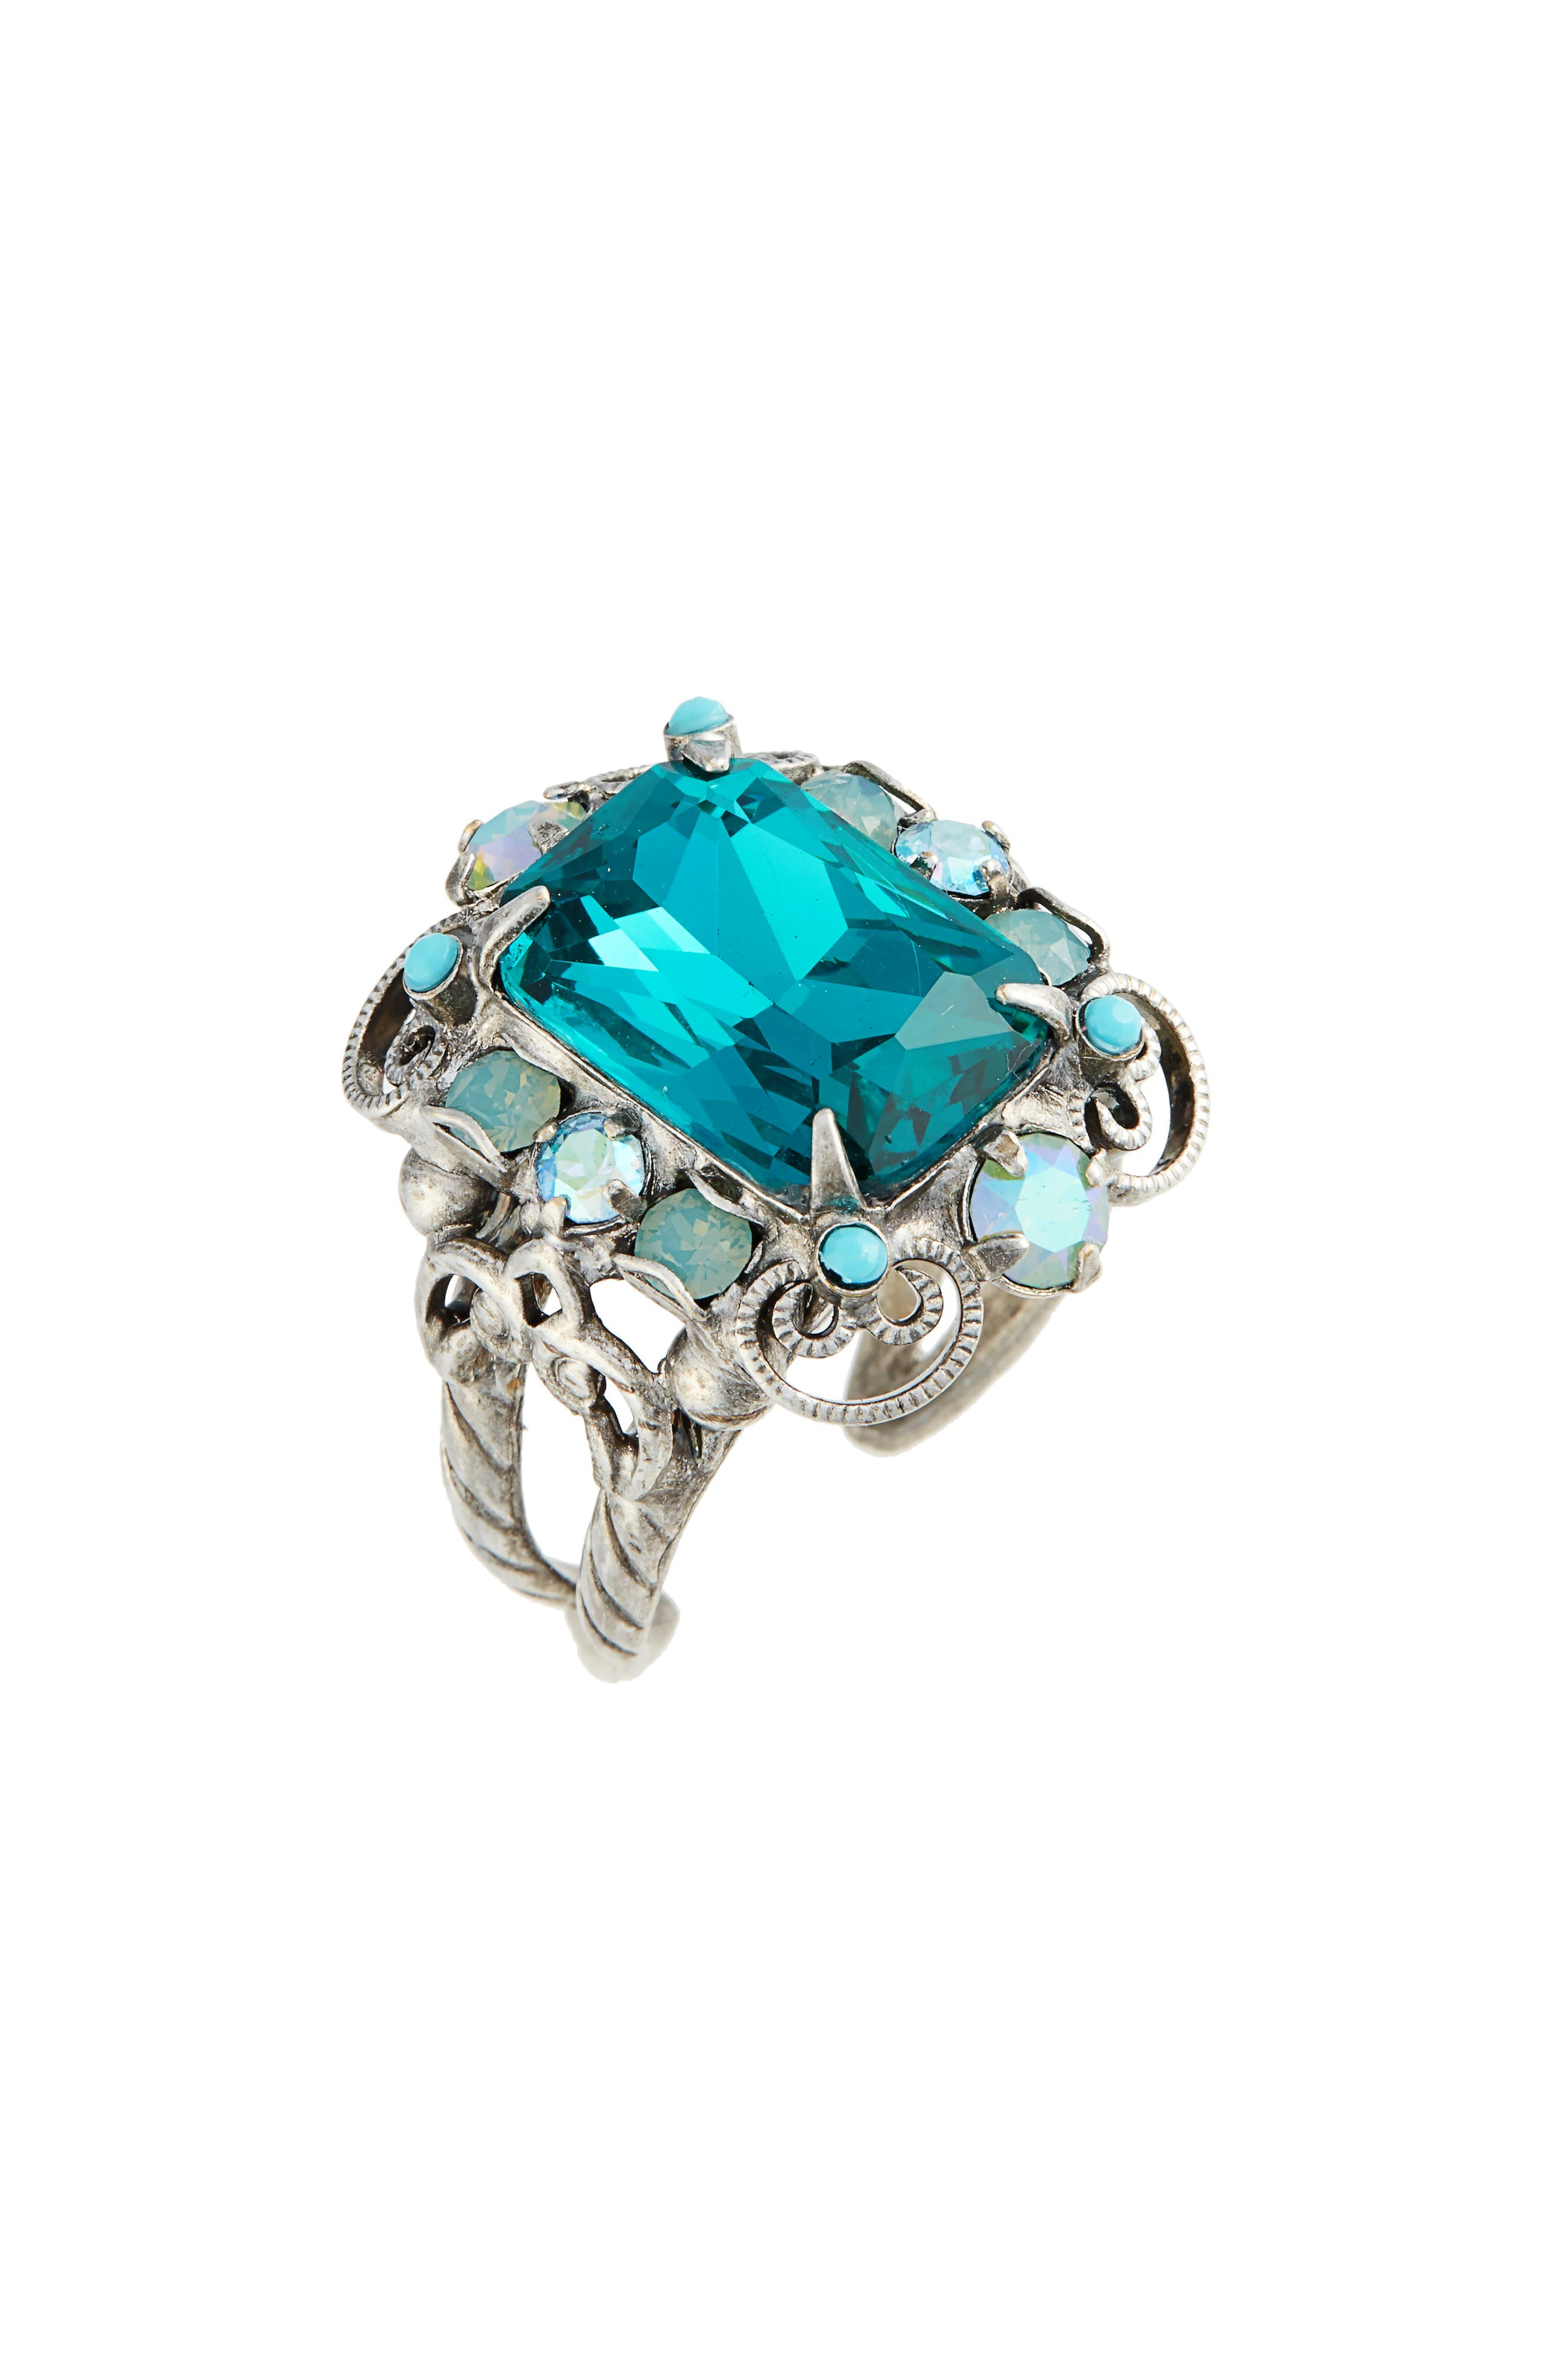 Sugar Maple Crystal Cocktail Ring,                         Main,                         color, Blue-Green